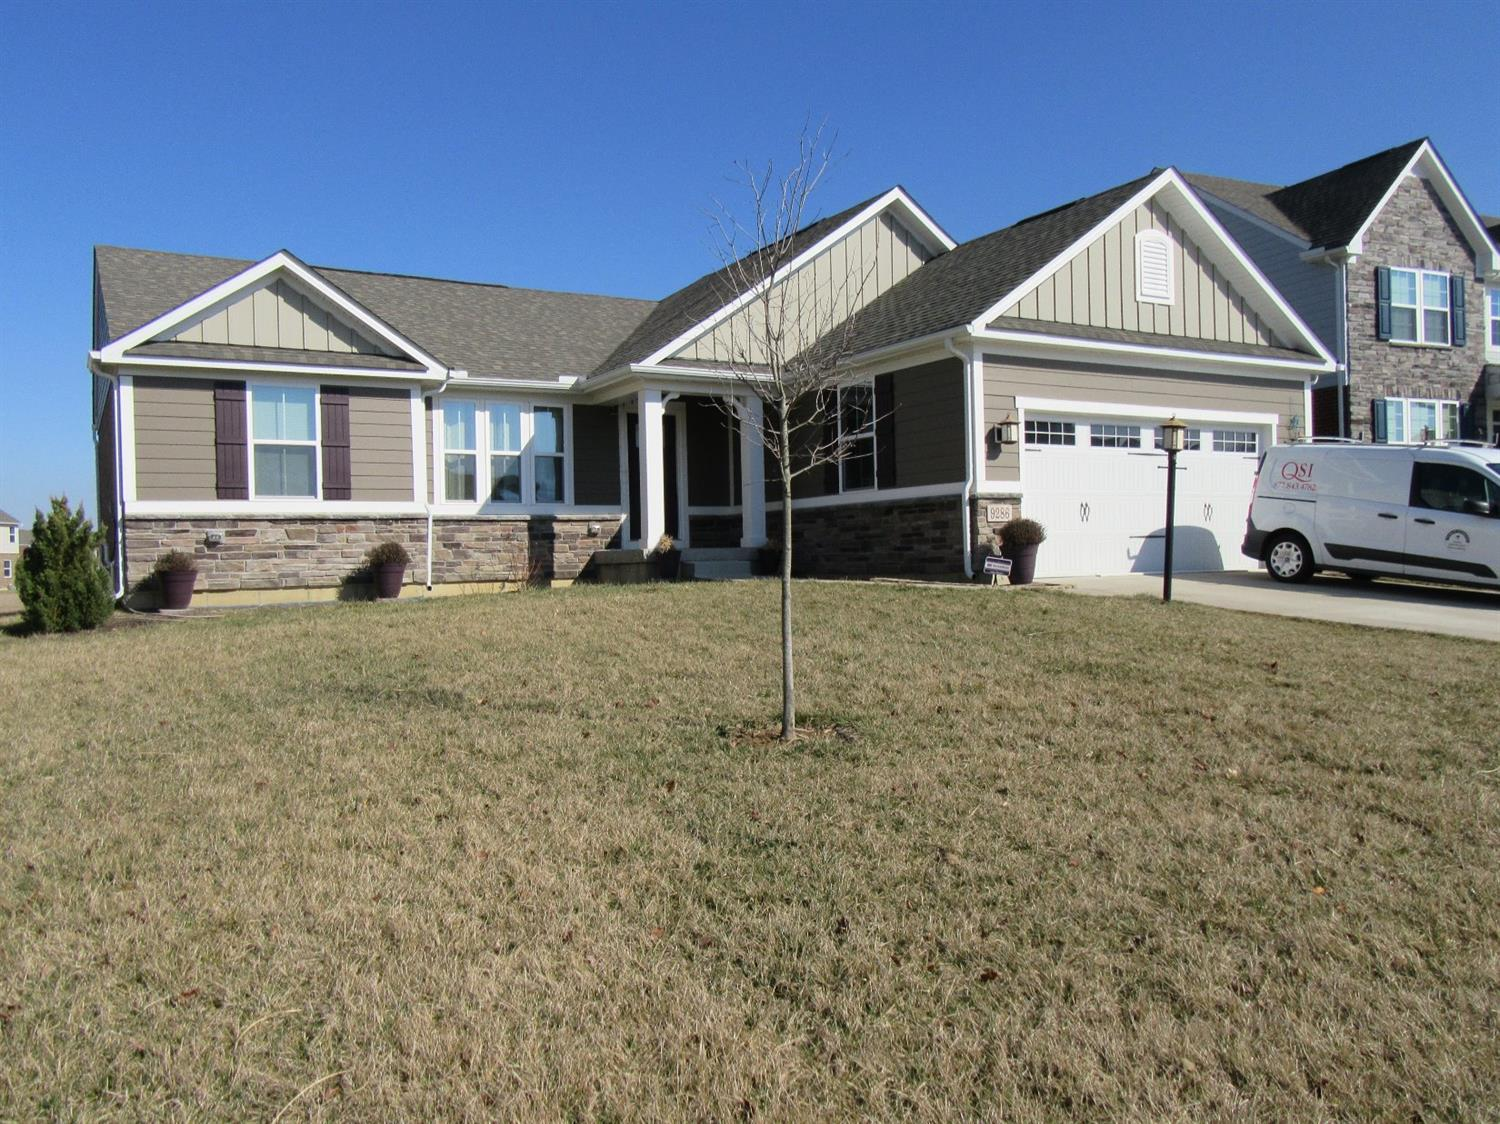 Property for sale at 9286 Maple Brook, Clearcreek Twp.,  Ohio 45066